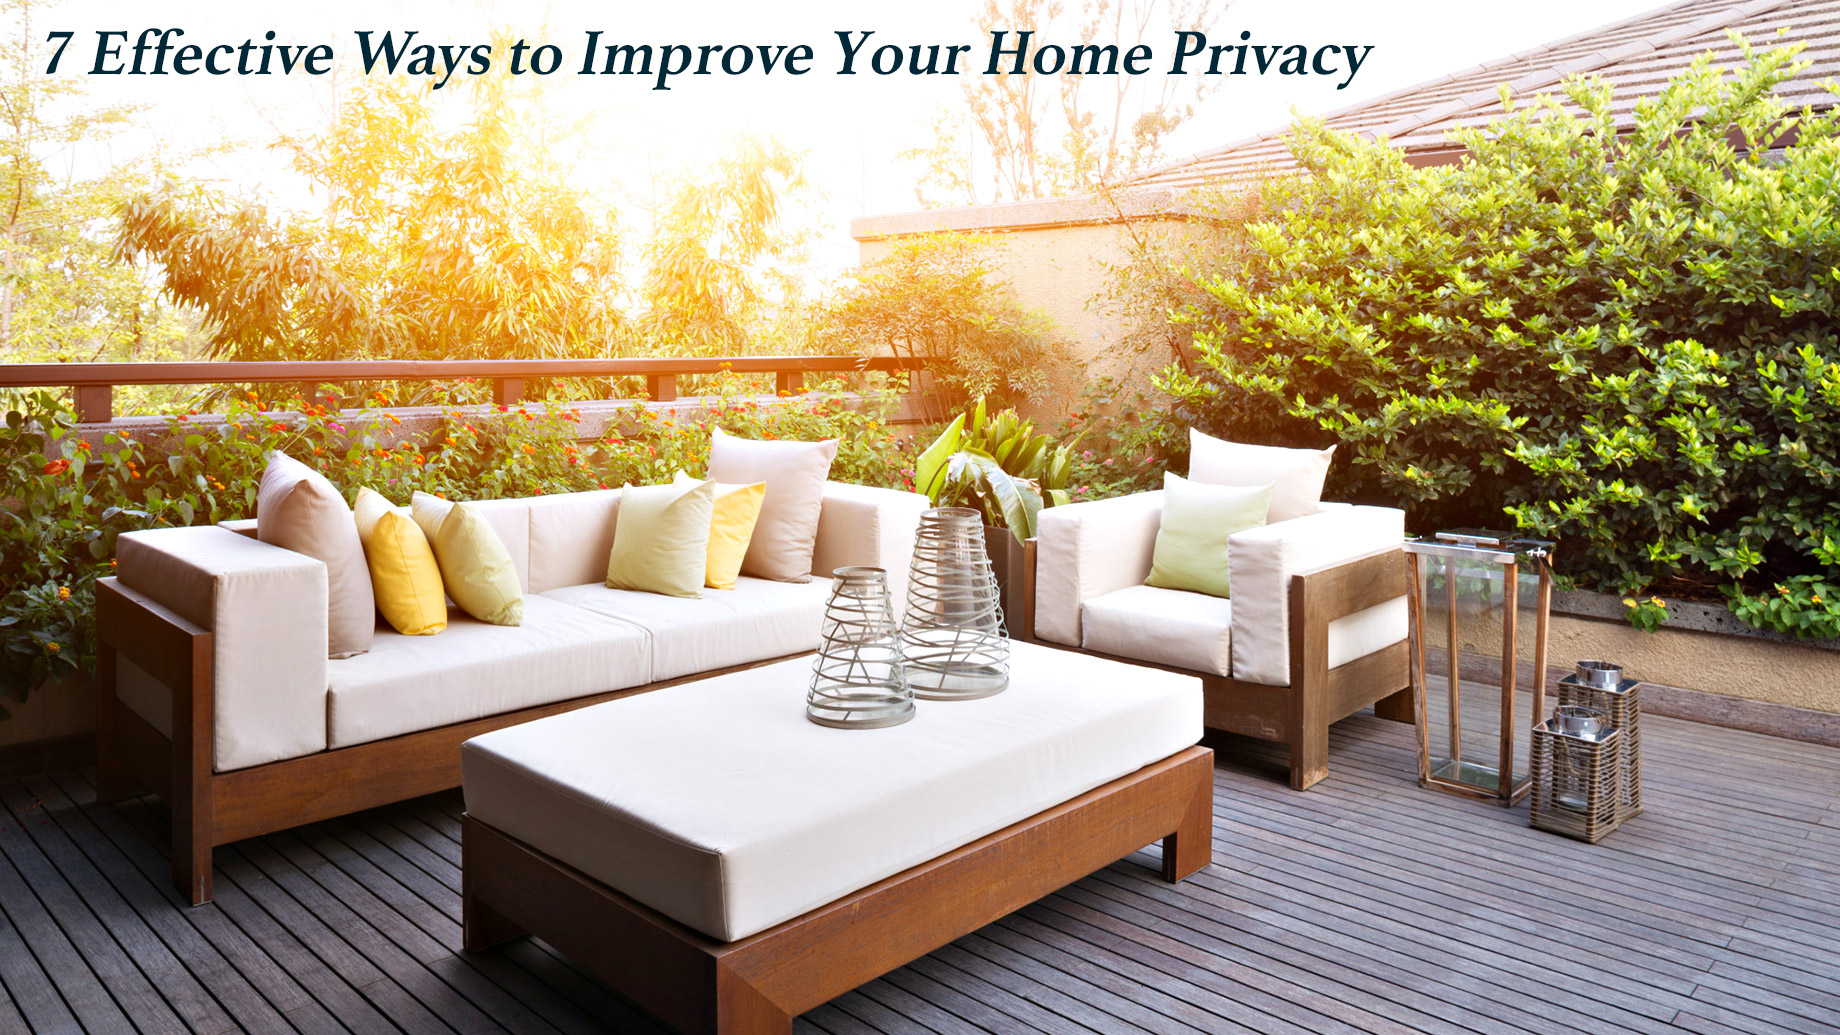 Shut Out Prying Eyes - 7 Effective Ways to Improve Your Home Privacy